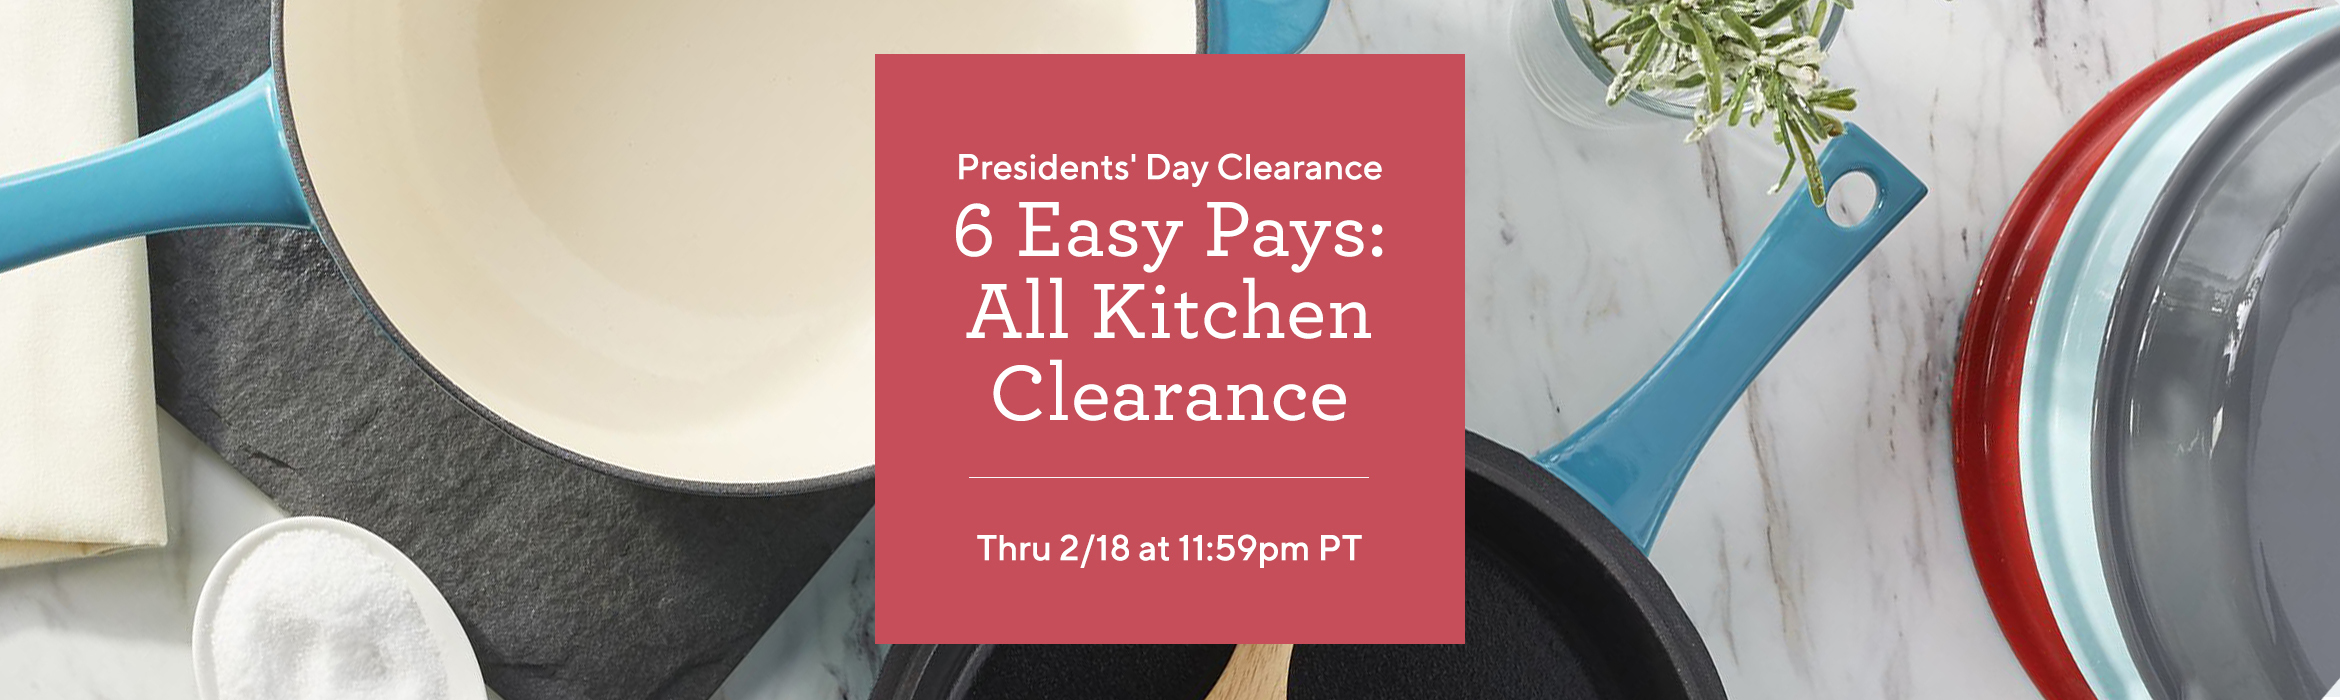 Presidents' Day Clearance  6 Easy Pays: All Kitchen Clearance  Thru 2/18 at 11:59pm PT